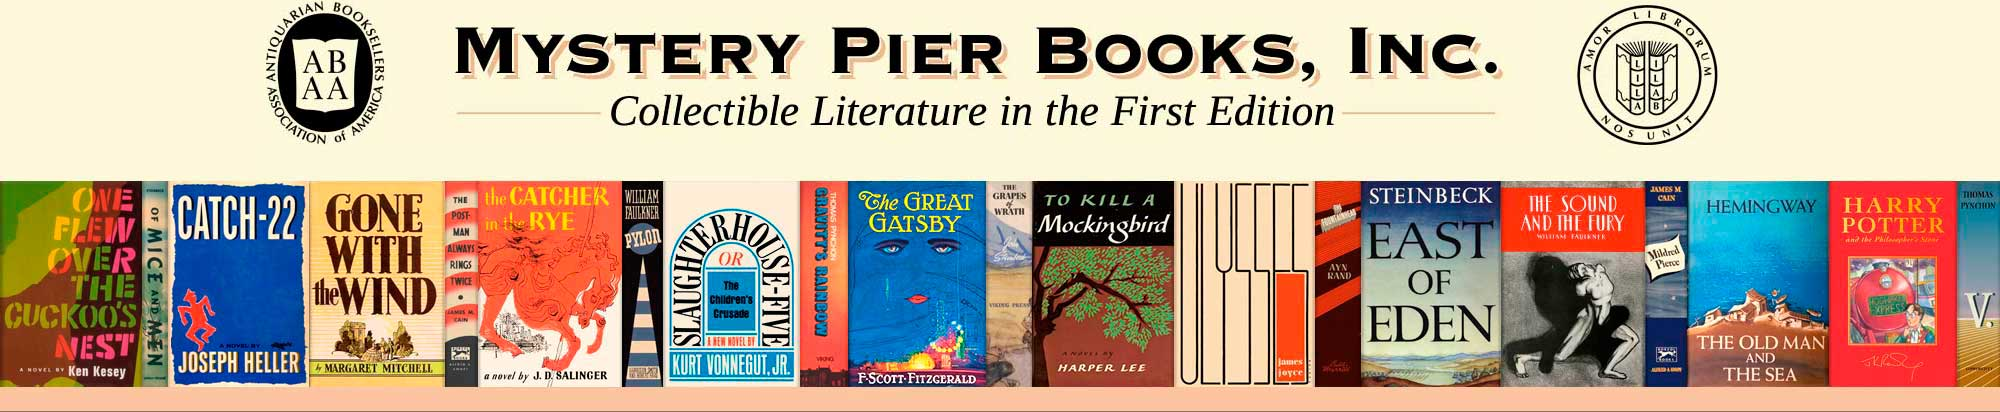 Collectible Literature in the First Edition